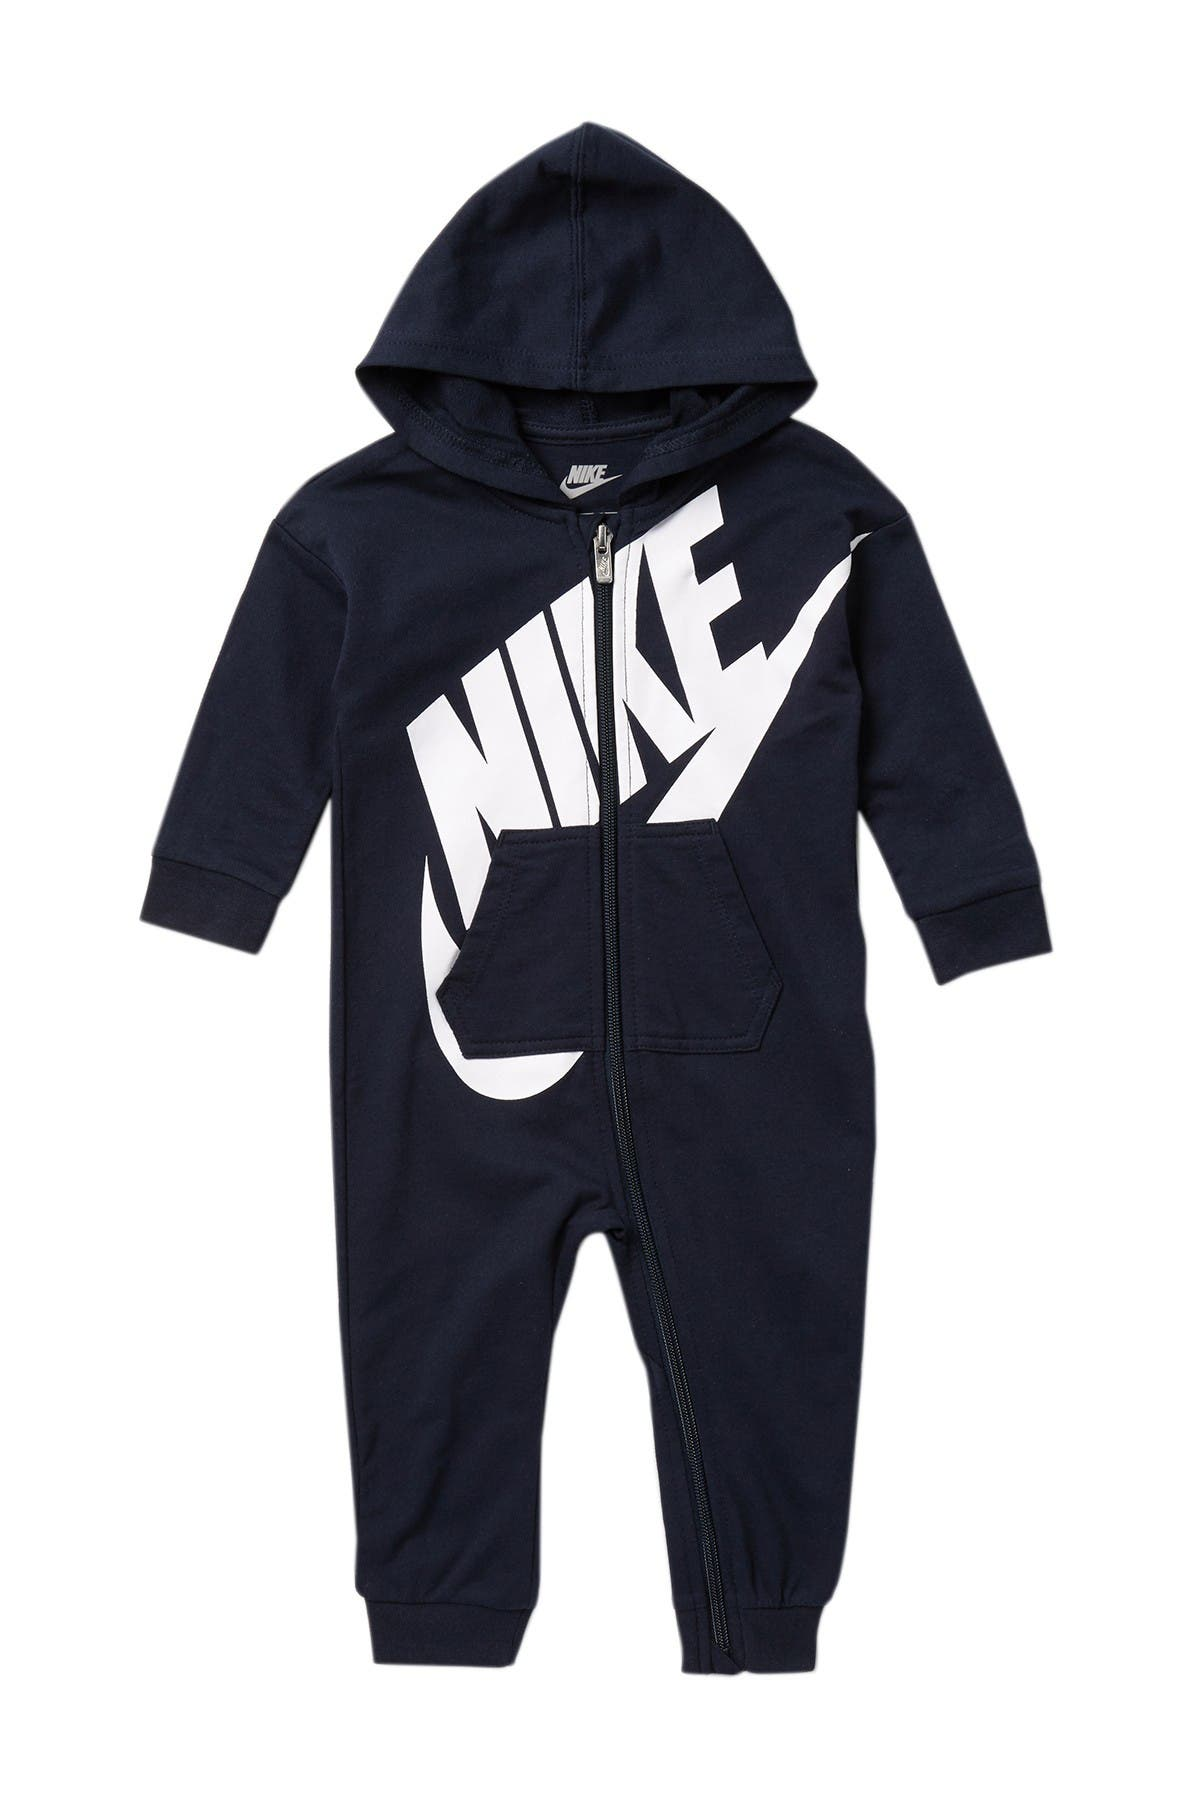 Nike Baby Boys Hooded Coverall Jumpsuit